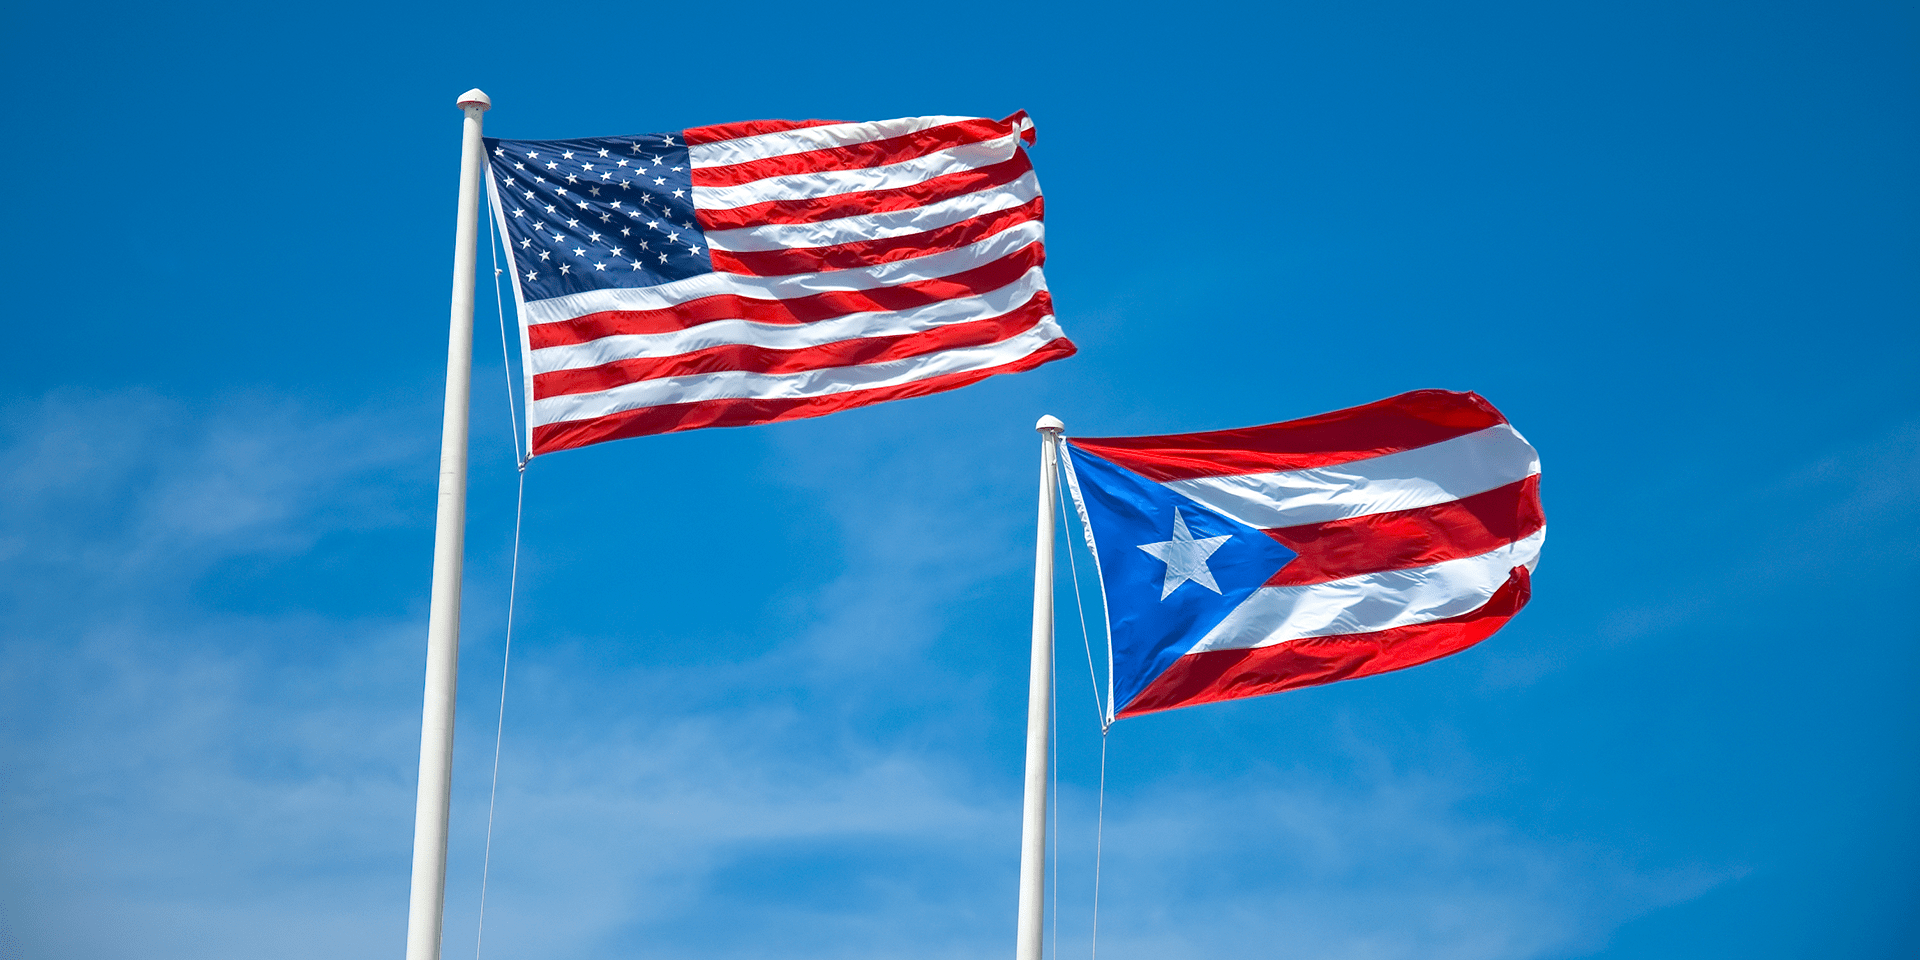 The Flag Of The Commonwealth Of Puerto Rico